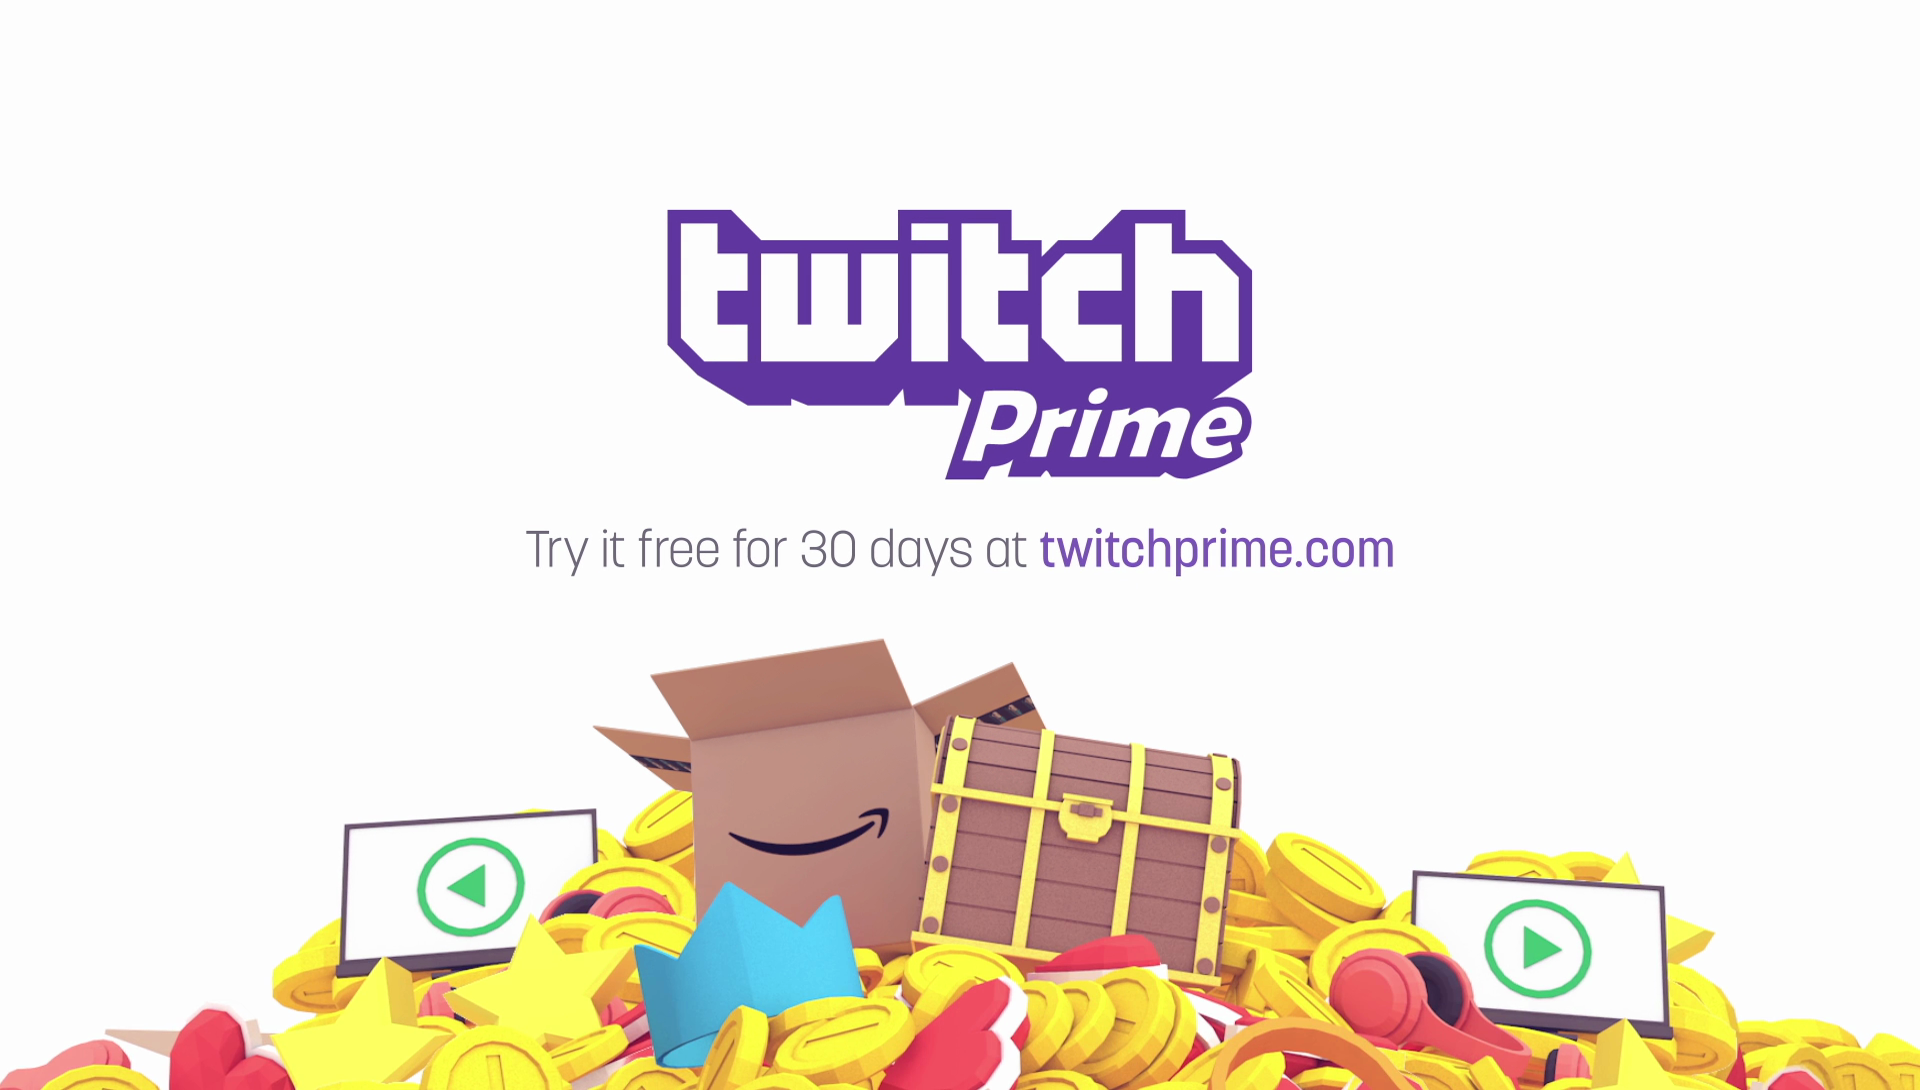 Twitch Prime will no longer include ad-free viewing - Polygon